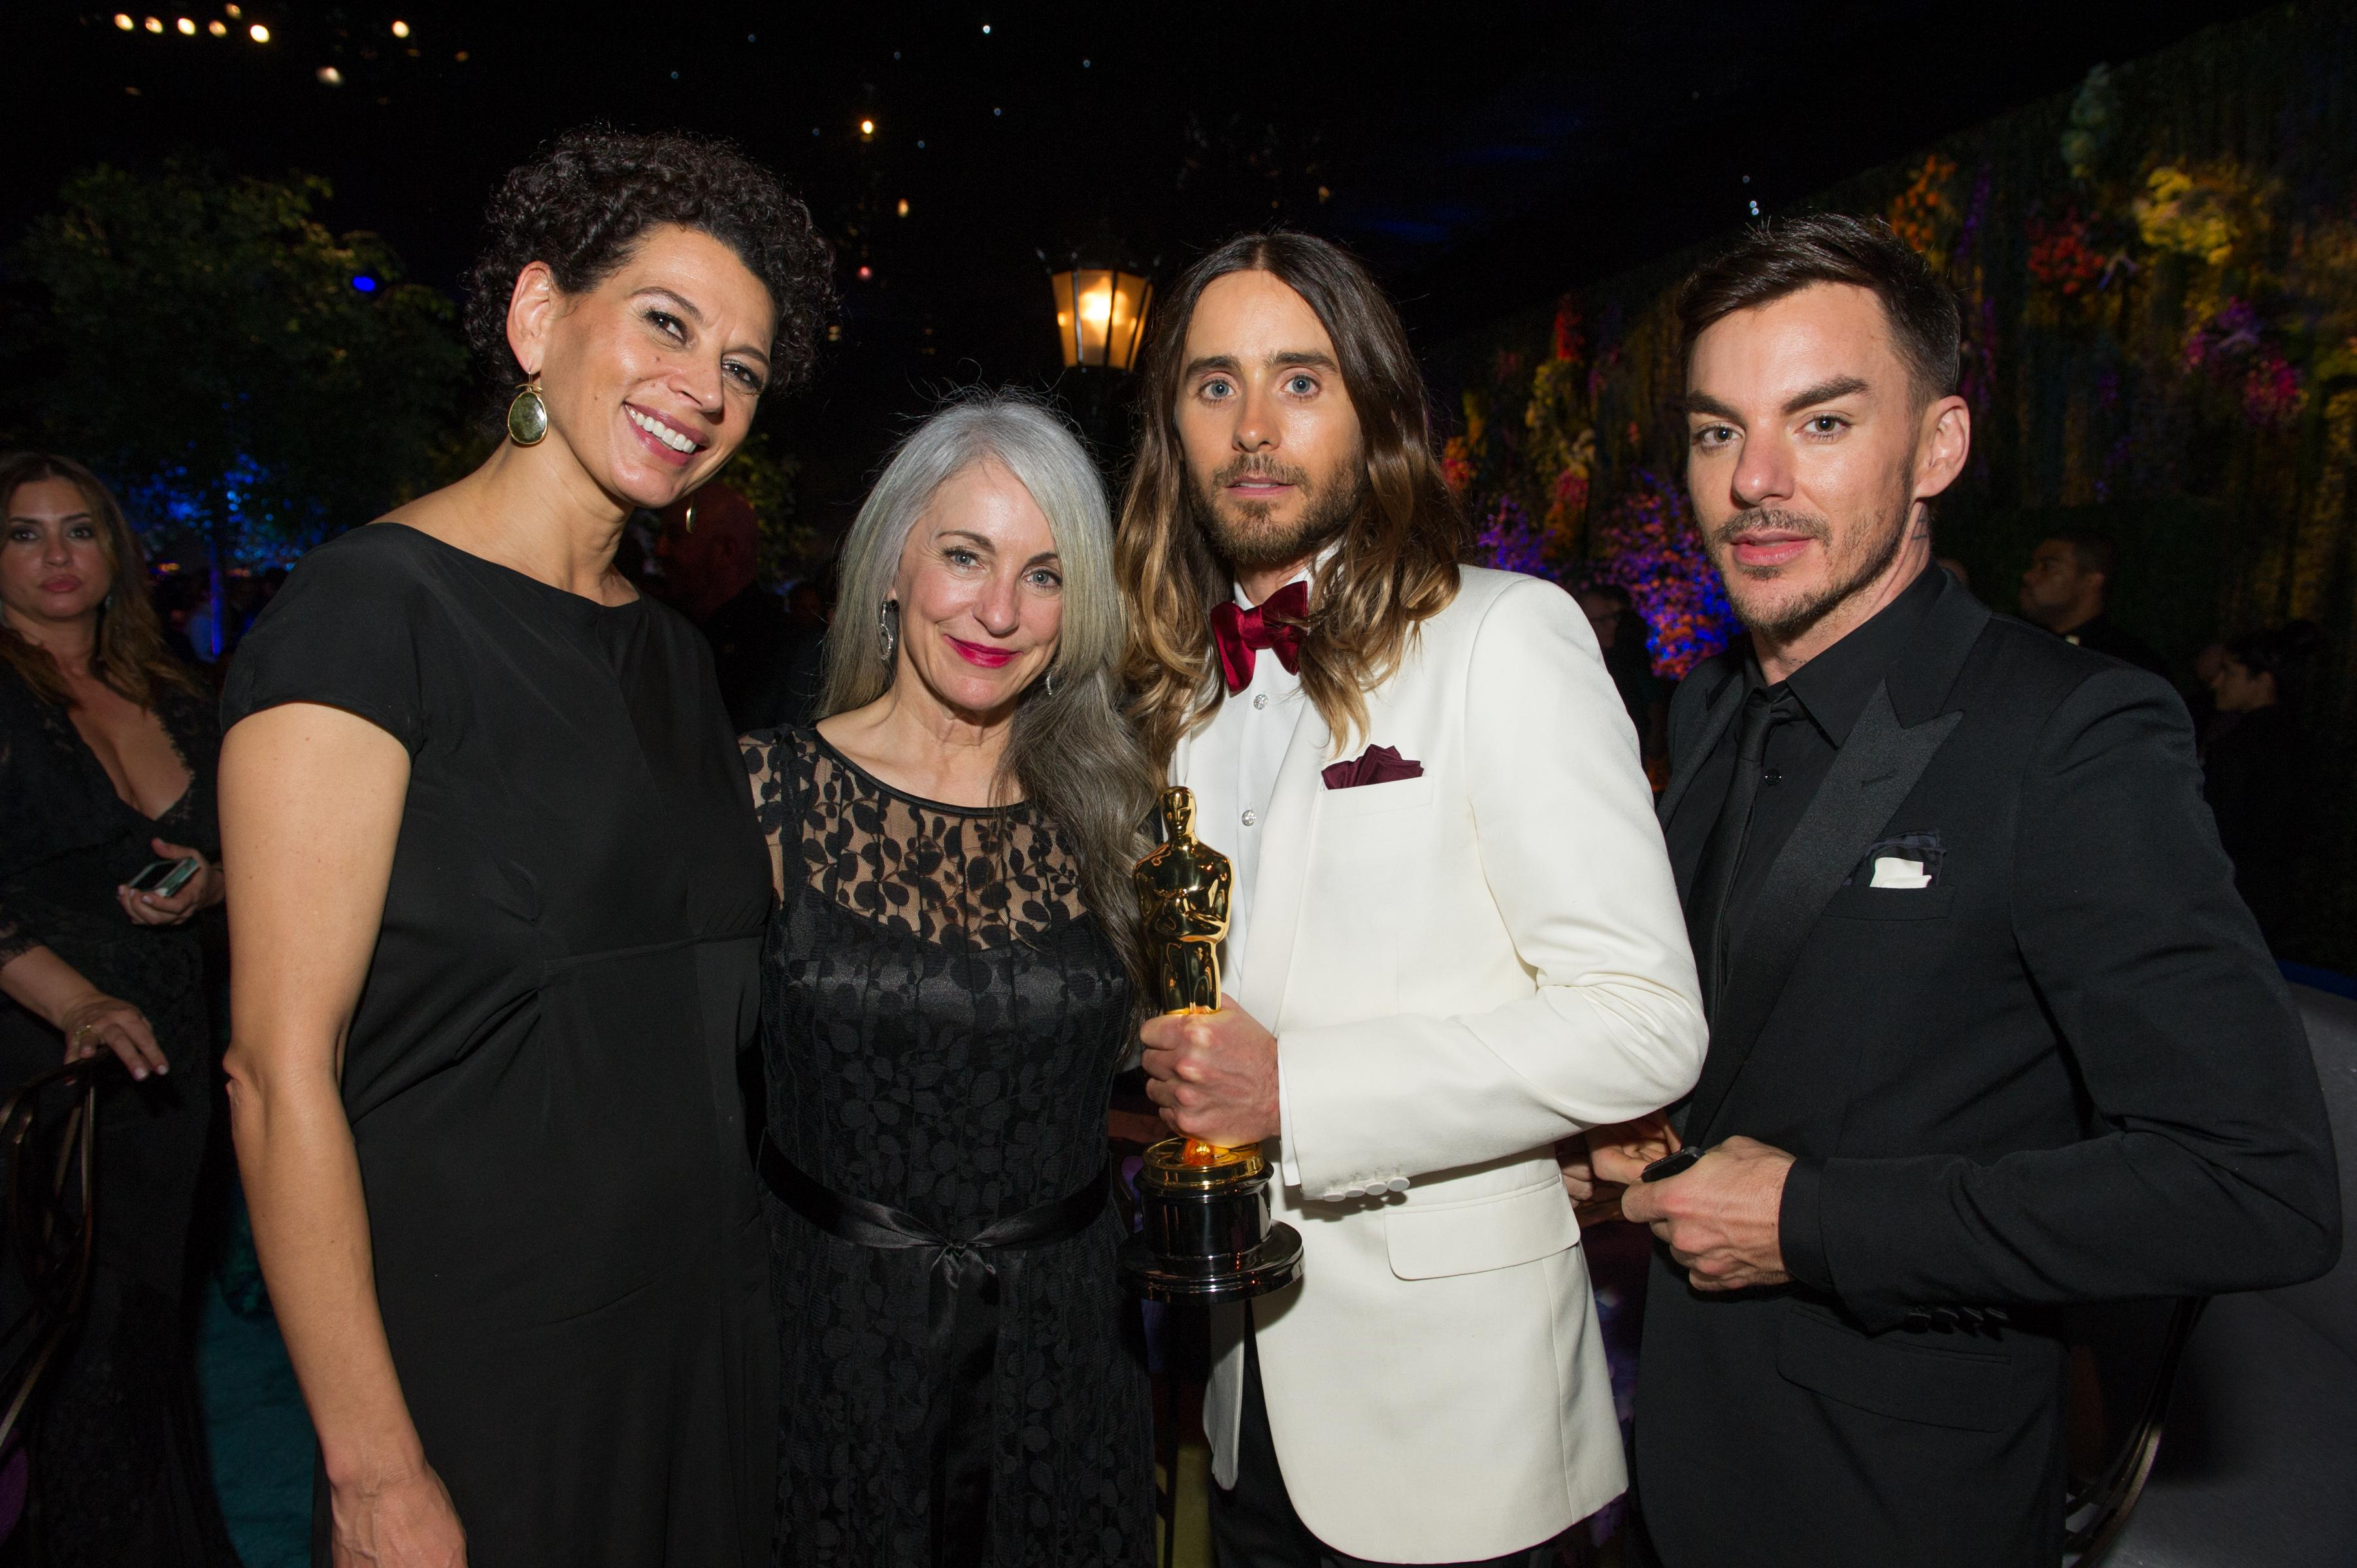 Oscars 2014: A fam�lia Leto no Baile do Governador